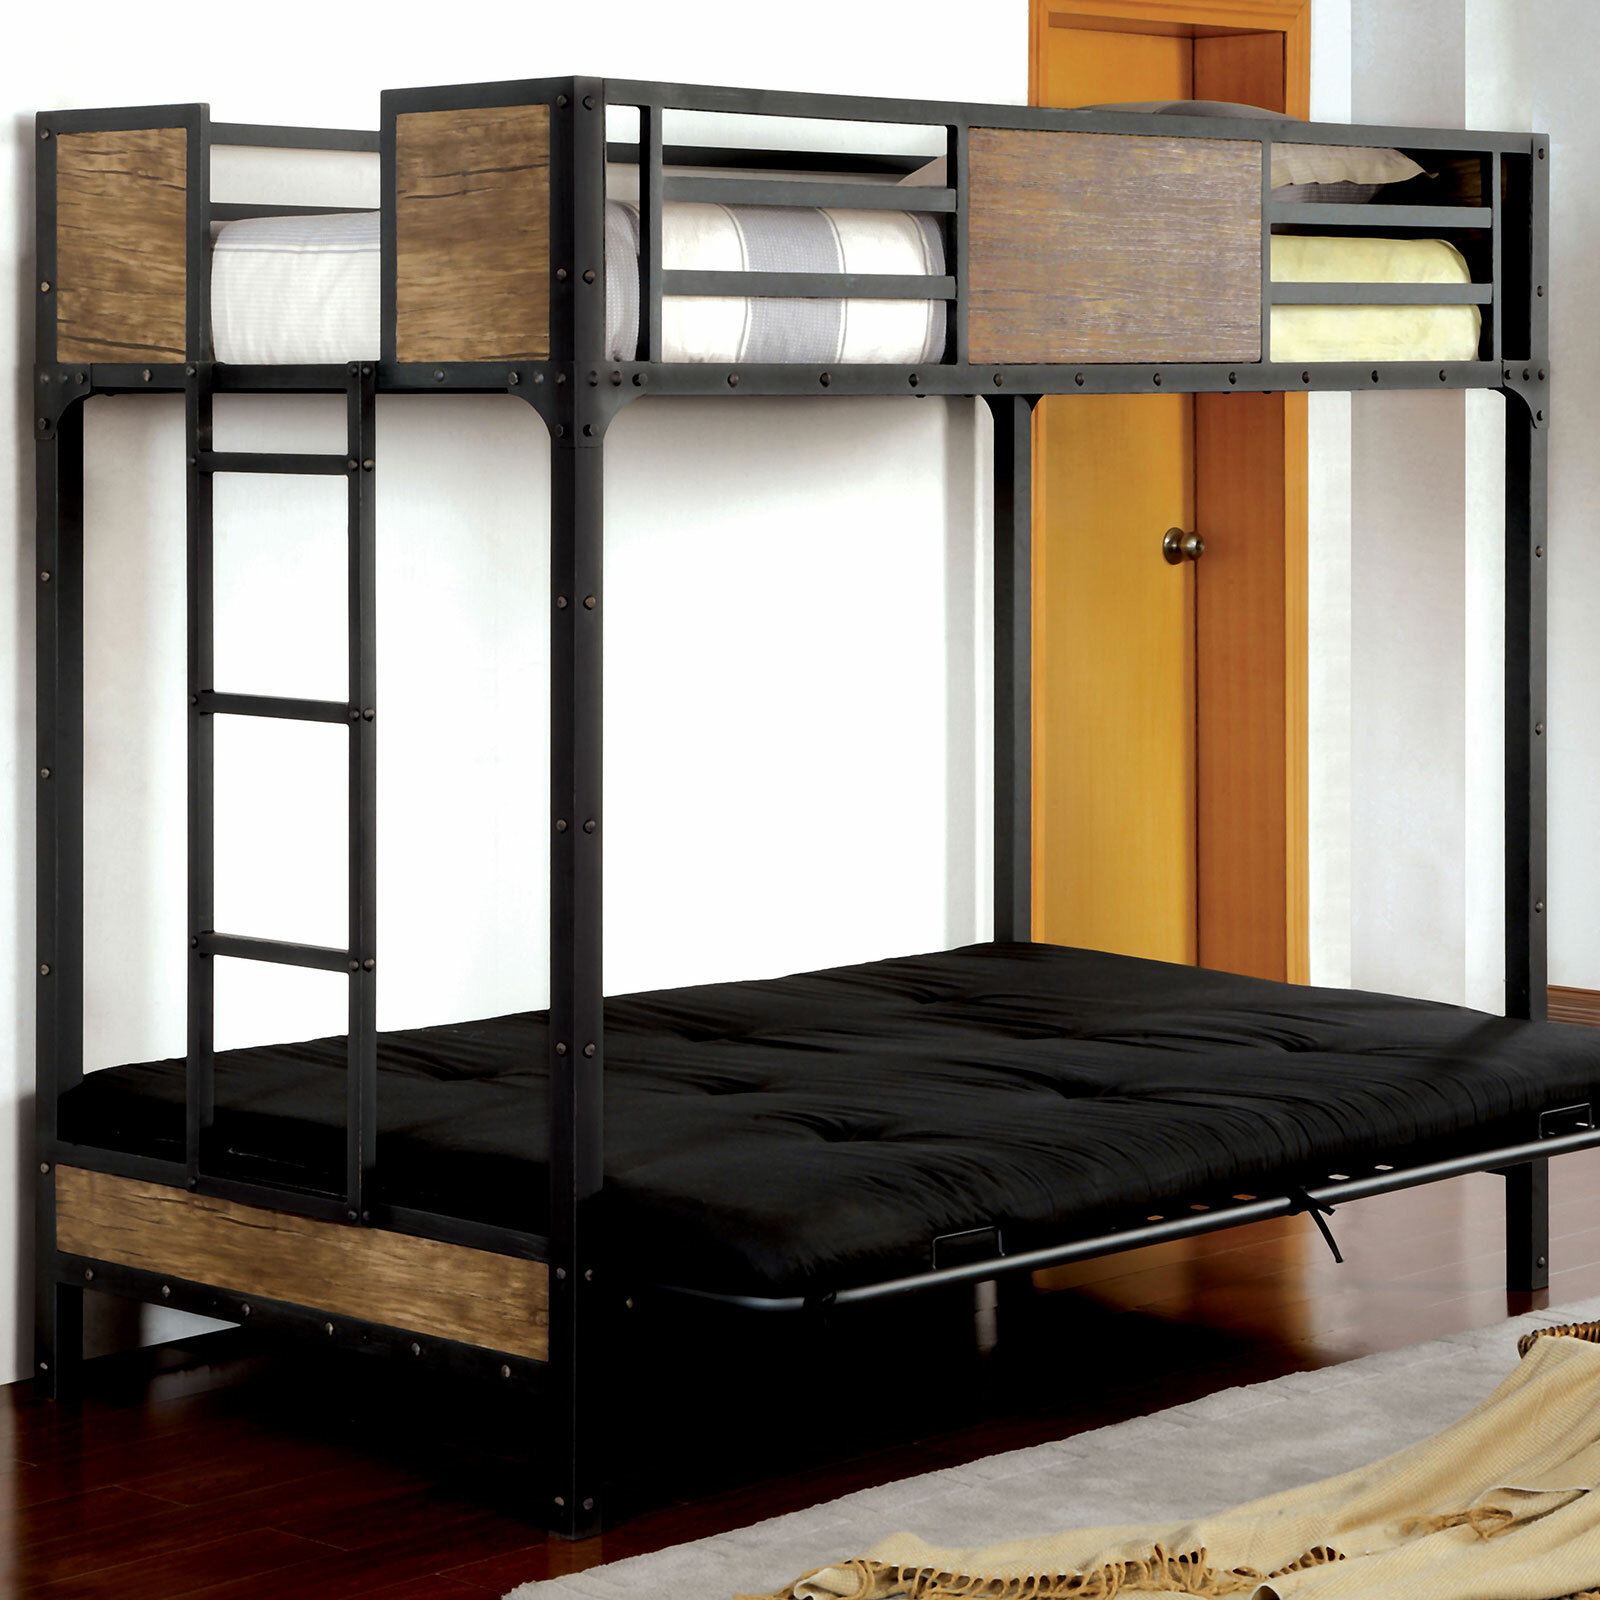 Espanola Twin Futon Bunk Bed